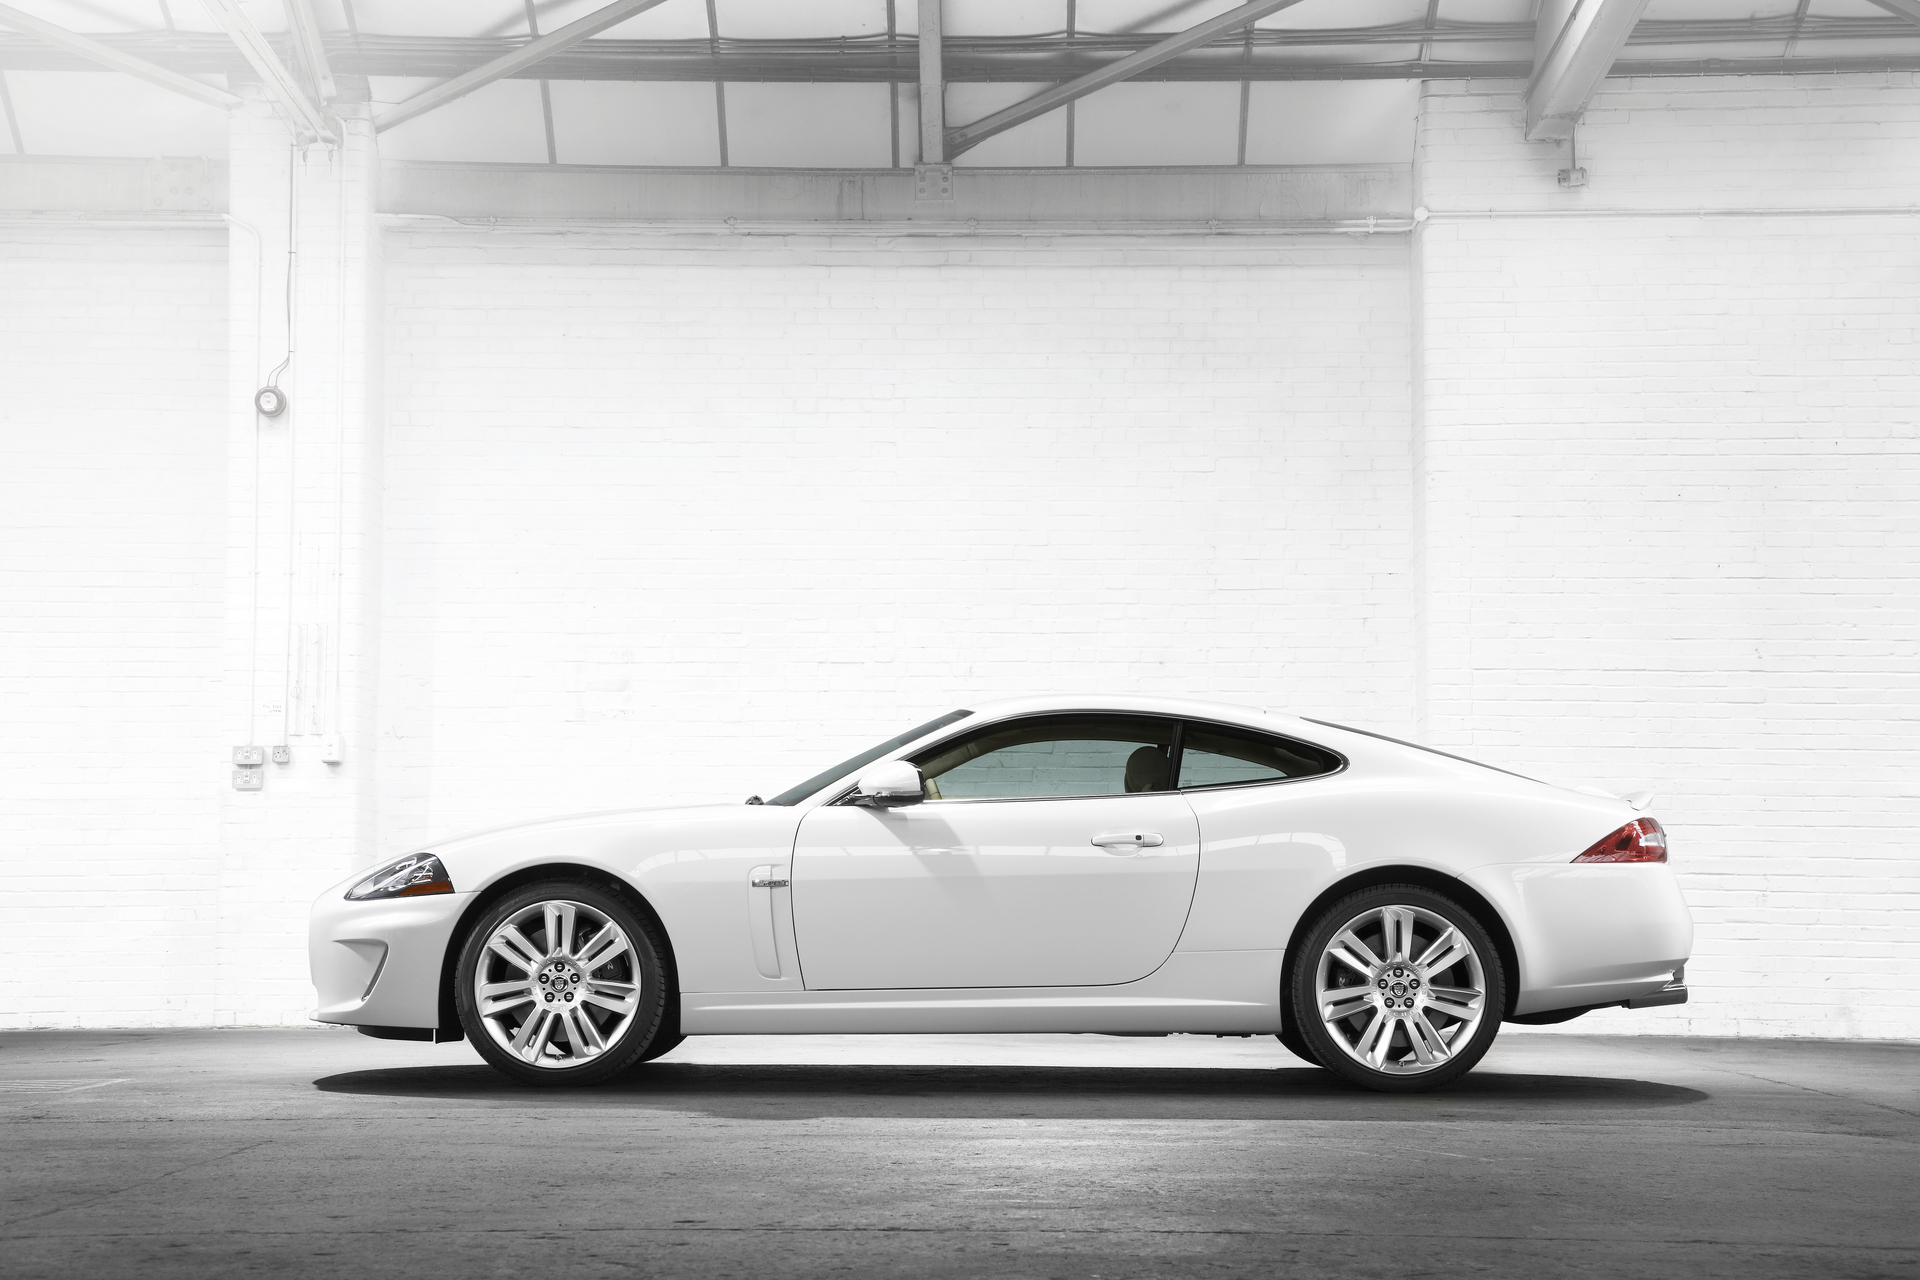 2010 Jaguar Xk Review Ratings Specs Prices And Photos The Car Connection